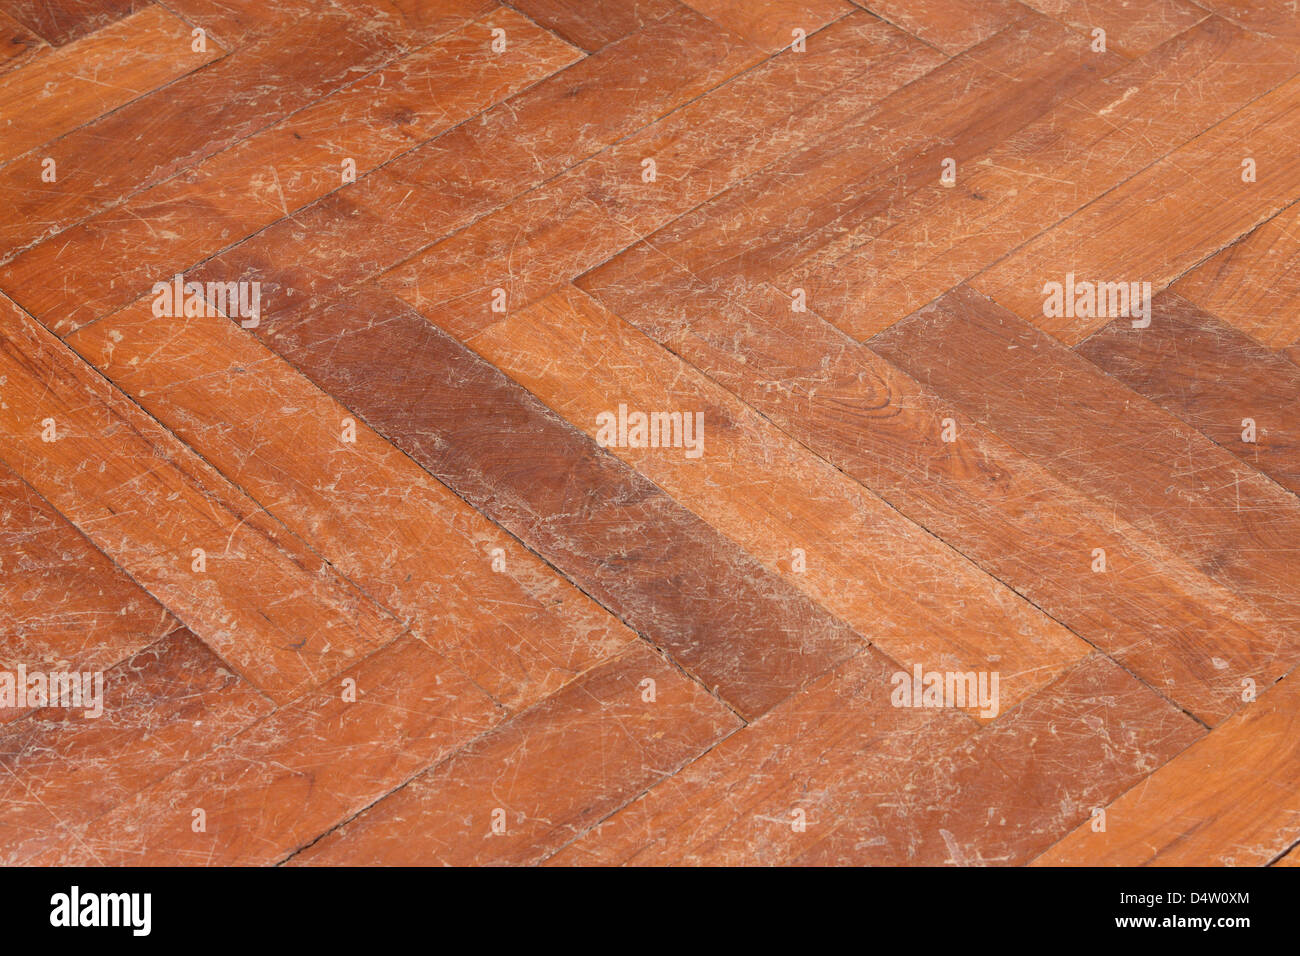 Old and scratched parquet floor surface - Stock Image